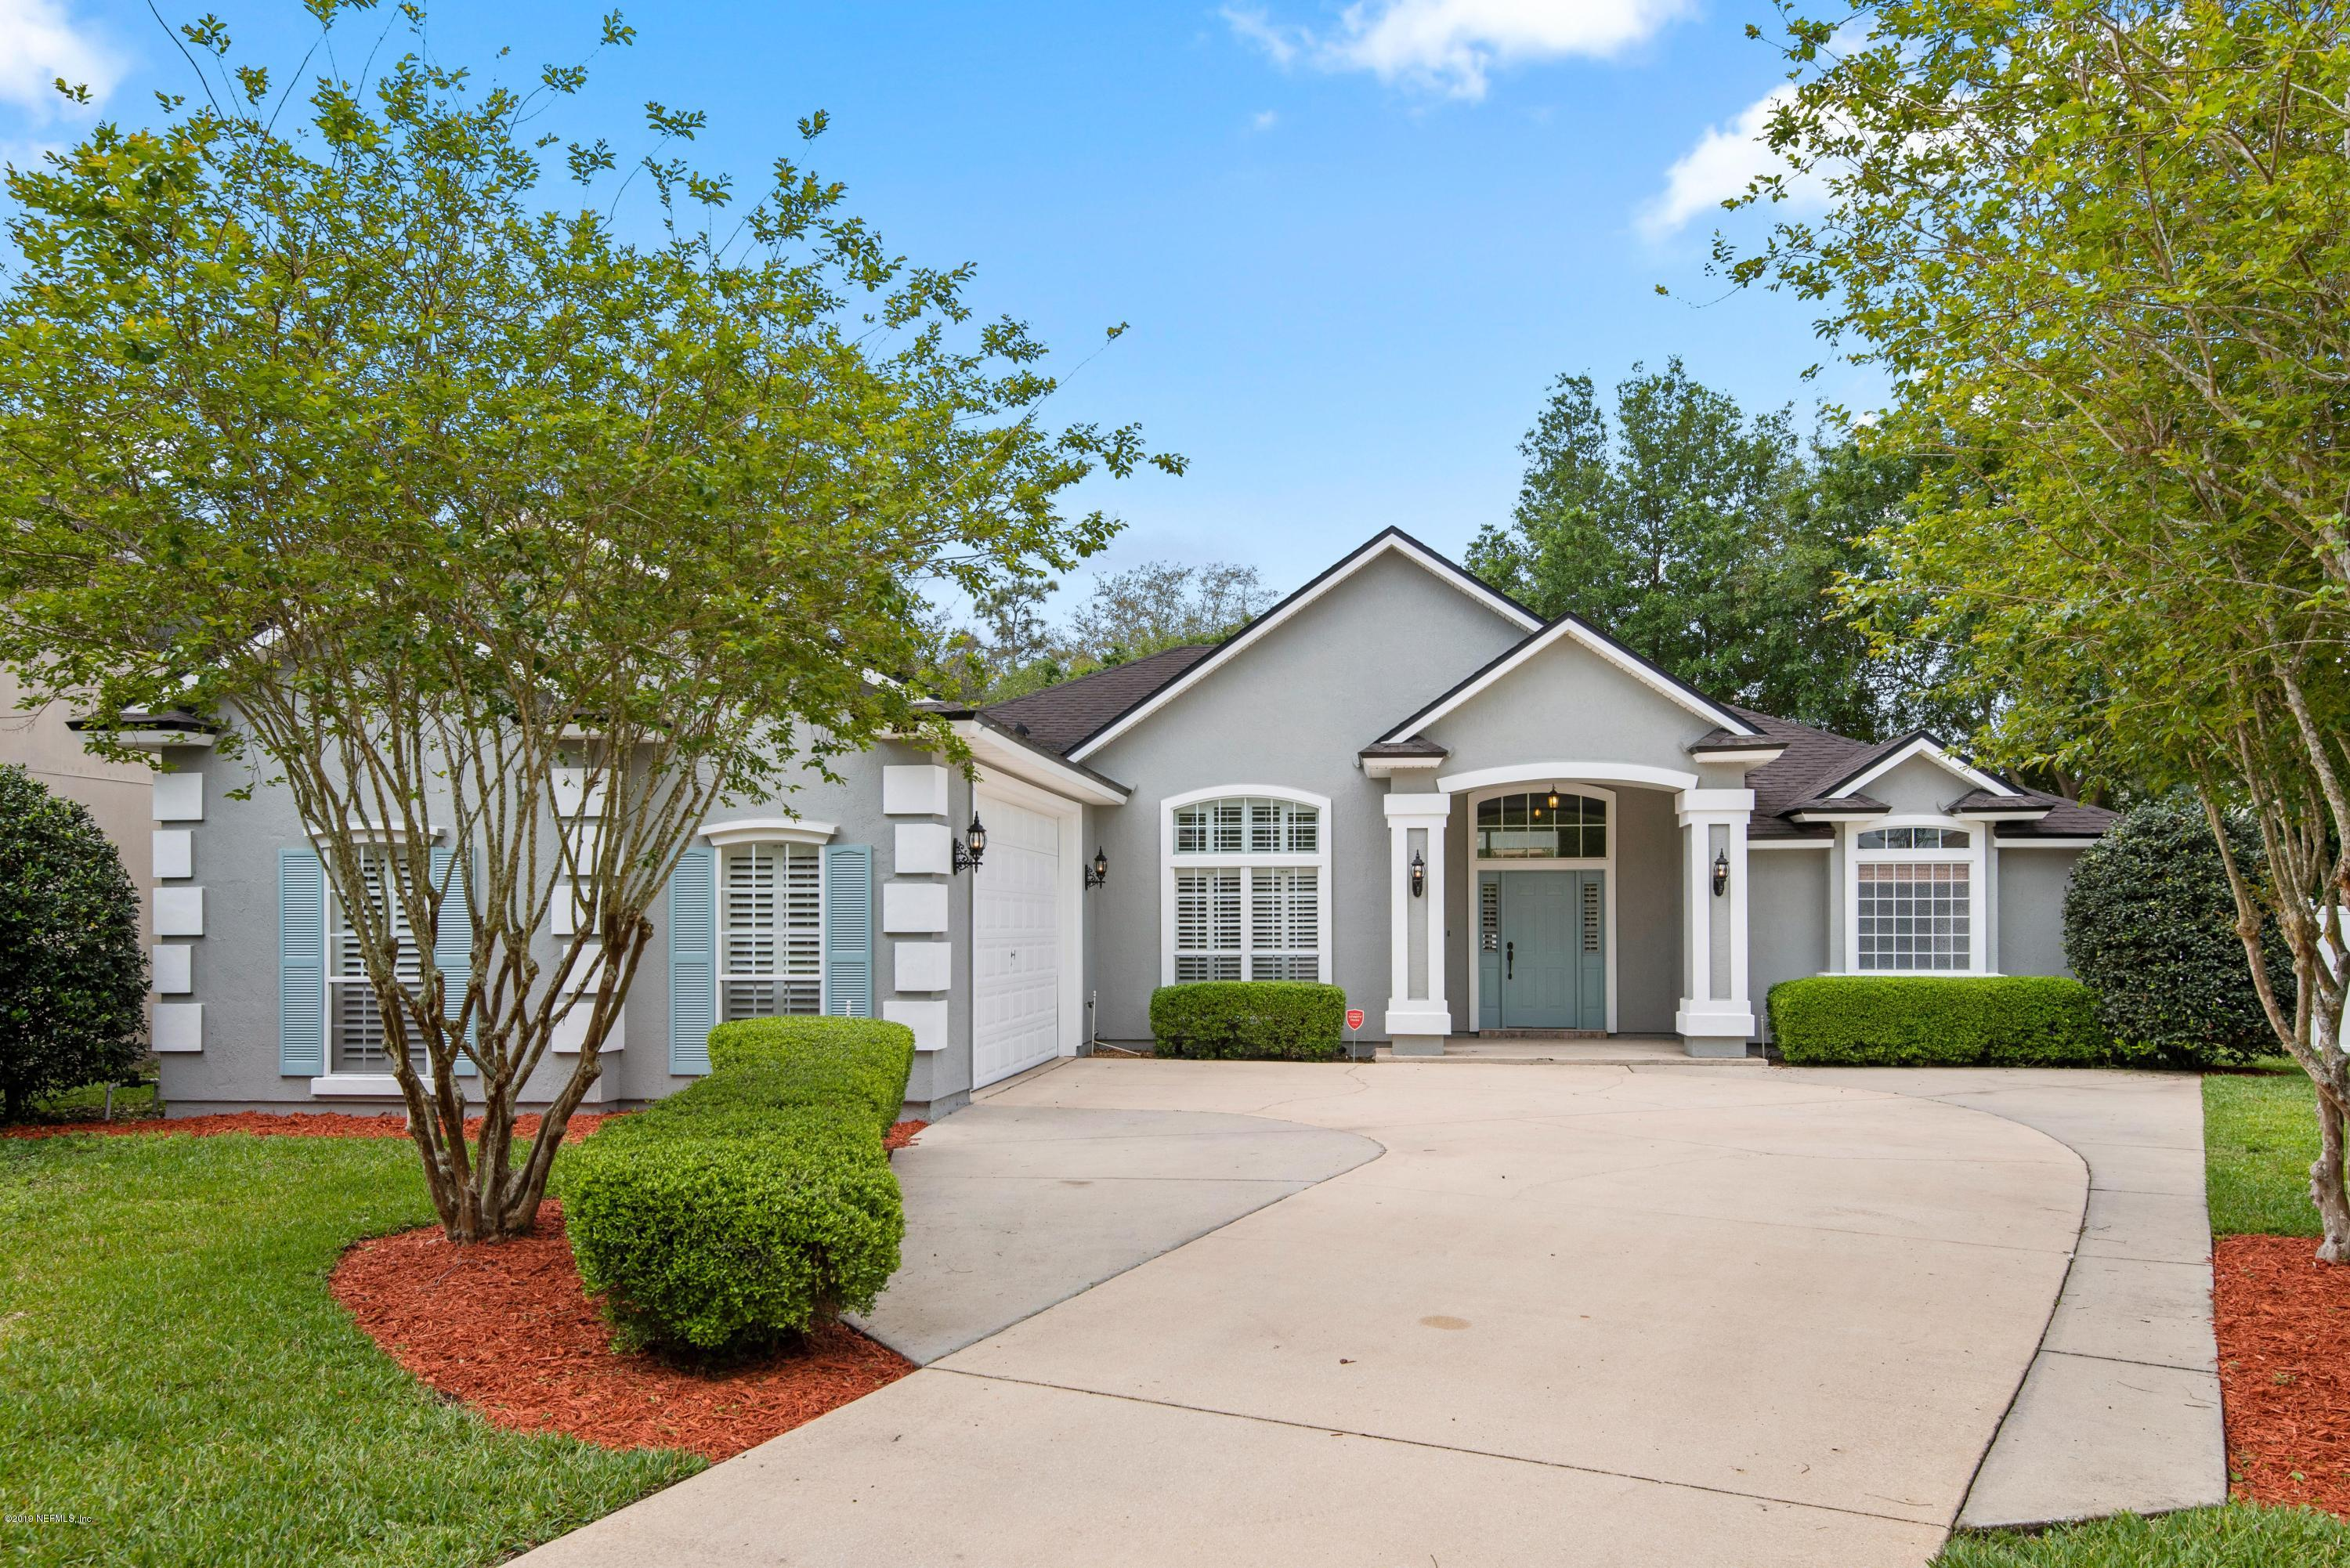 834 LILAC, ST JOHNS, FLORIDA 32259, 4 Bedrooms Bedrooms, ,2 BathroomsBathrooms,Residential - single family,For sale,LILAC,987844